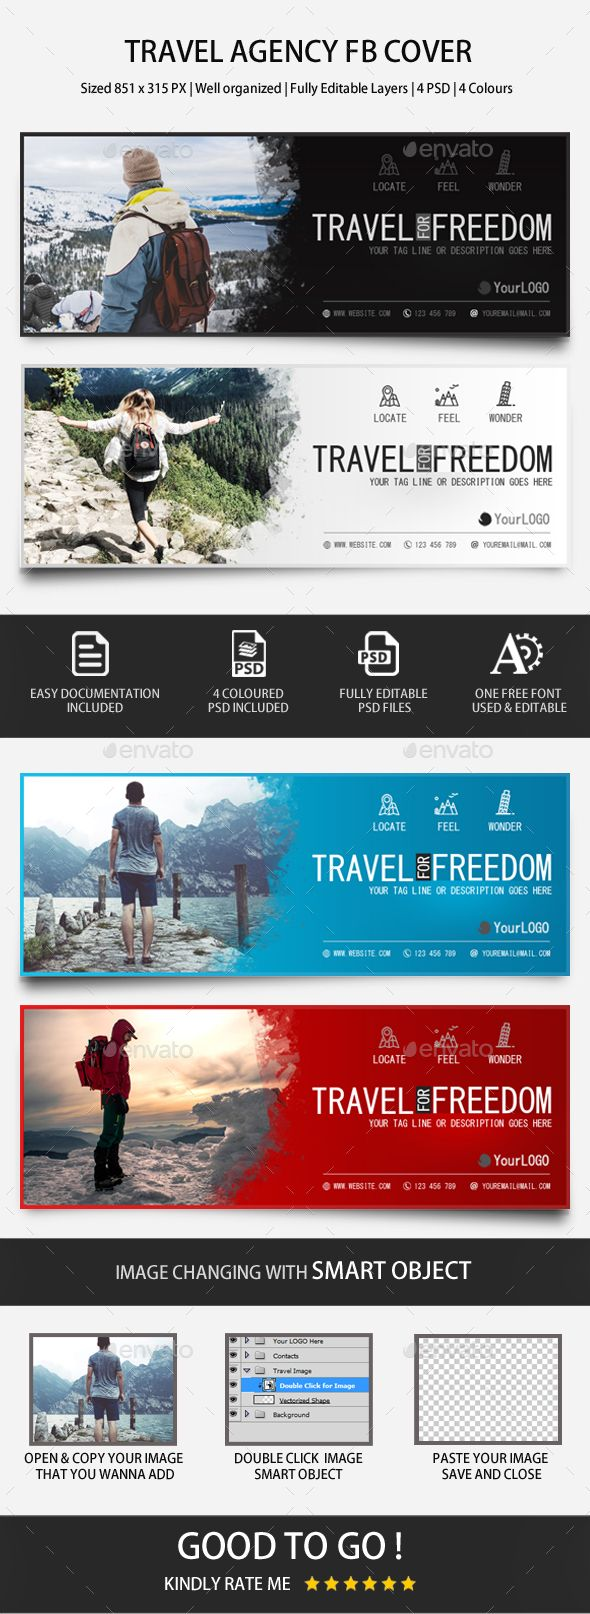 Travel Agency Facebook Covers Template PSD Facebook